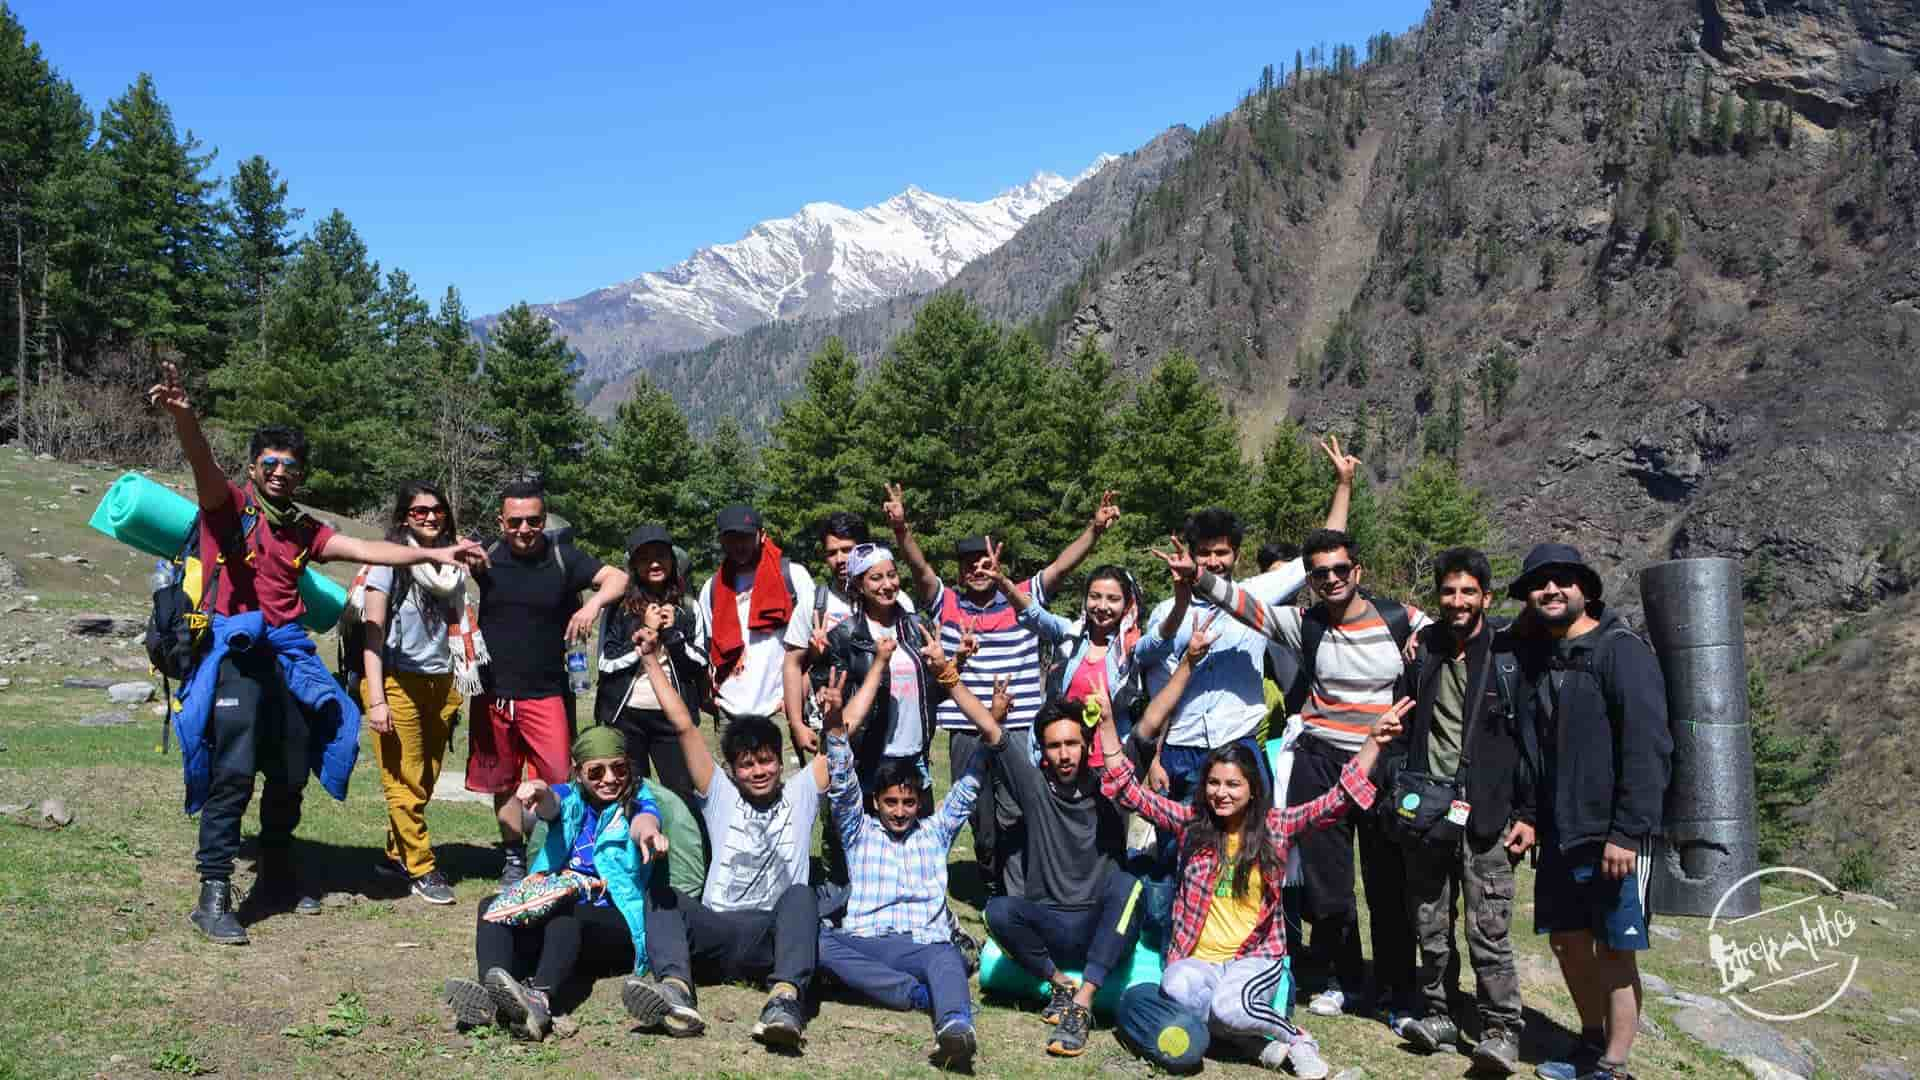 Kheerganga trek group - Parvati valley